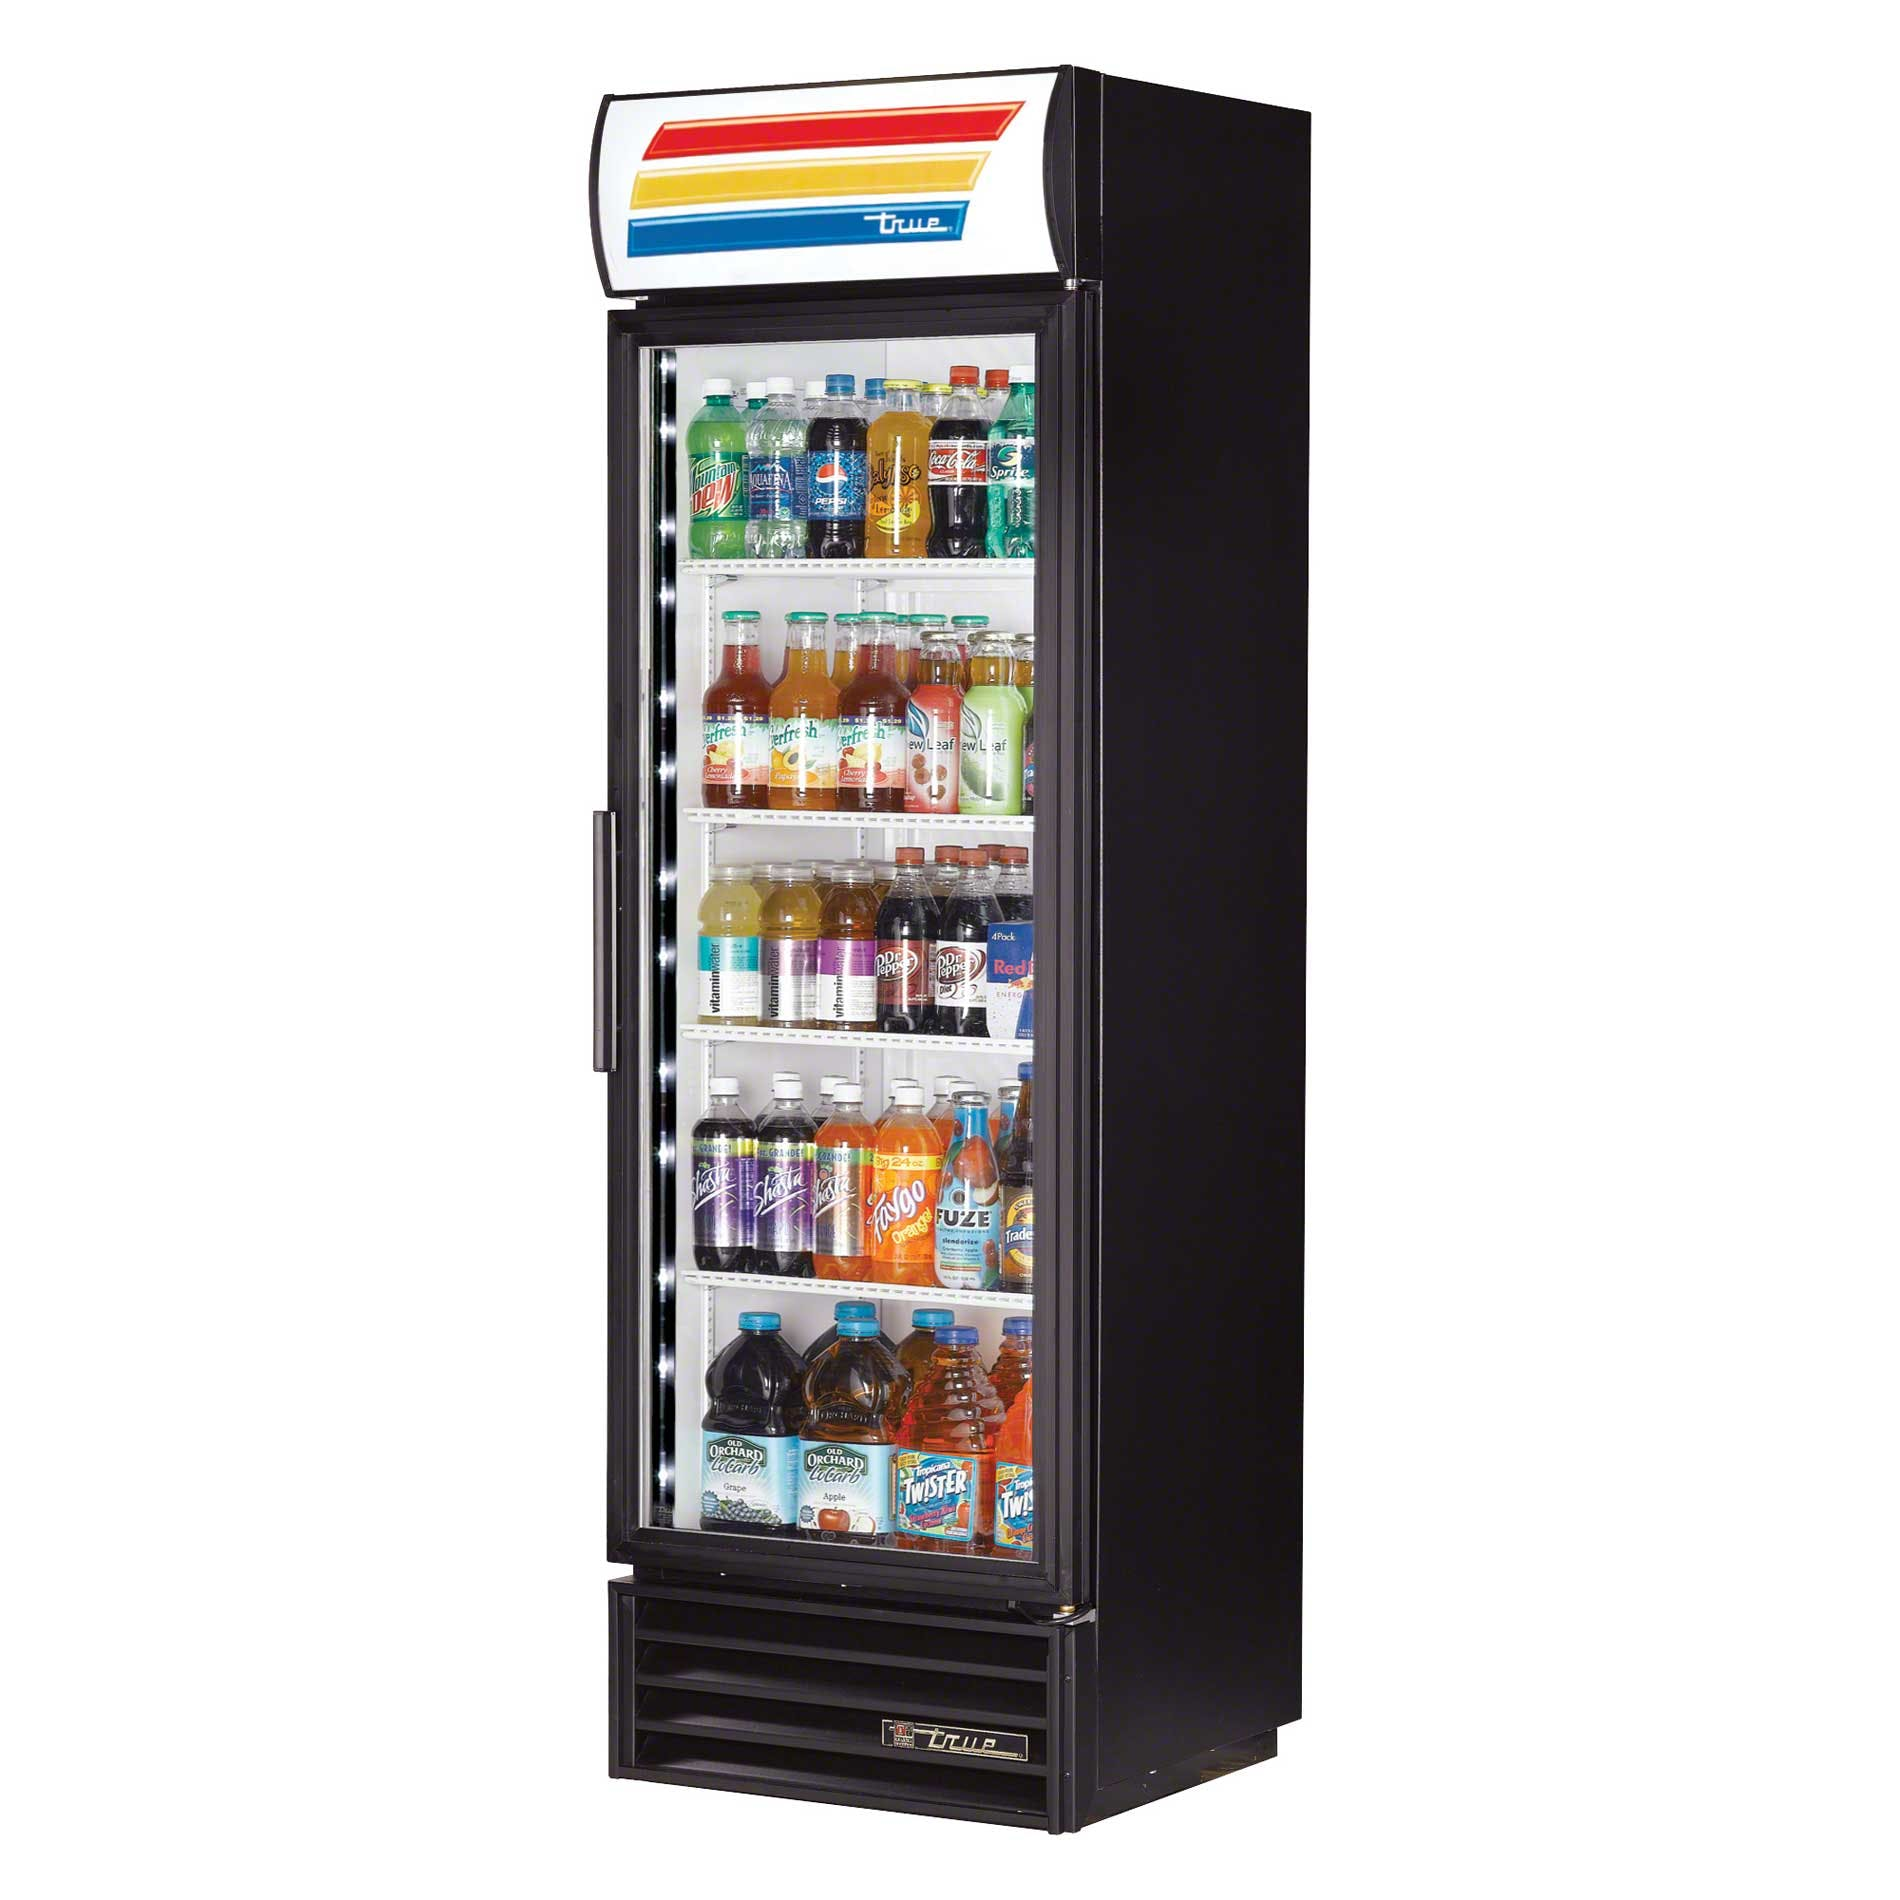 "True - TVM-400-LD 25"" Swing Glass Door Merchandiser Refrigerator LED Commercial refrigerator sold by Food Service Warehouse"